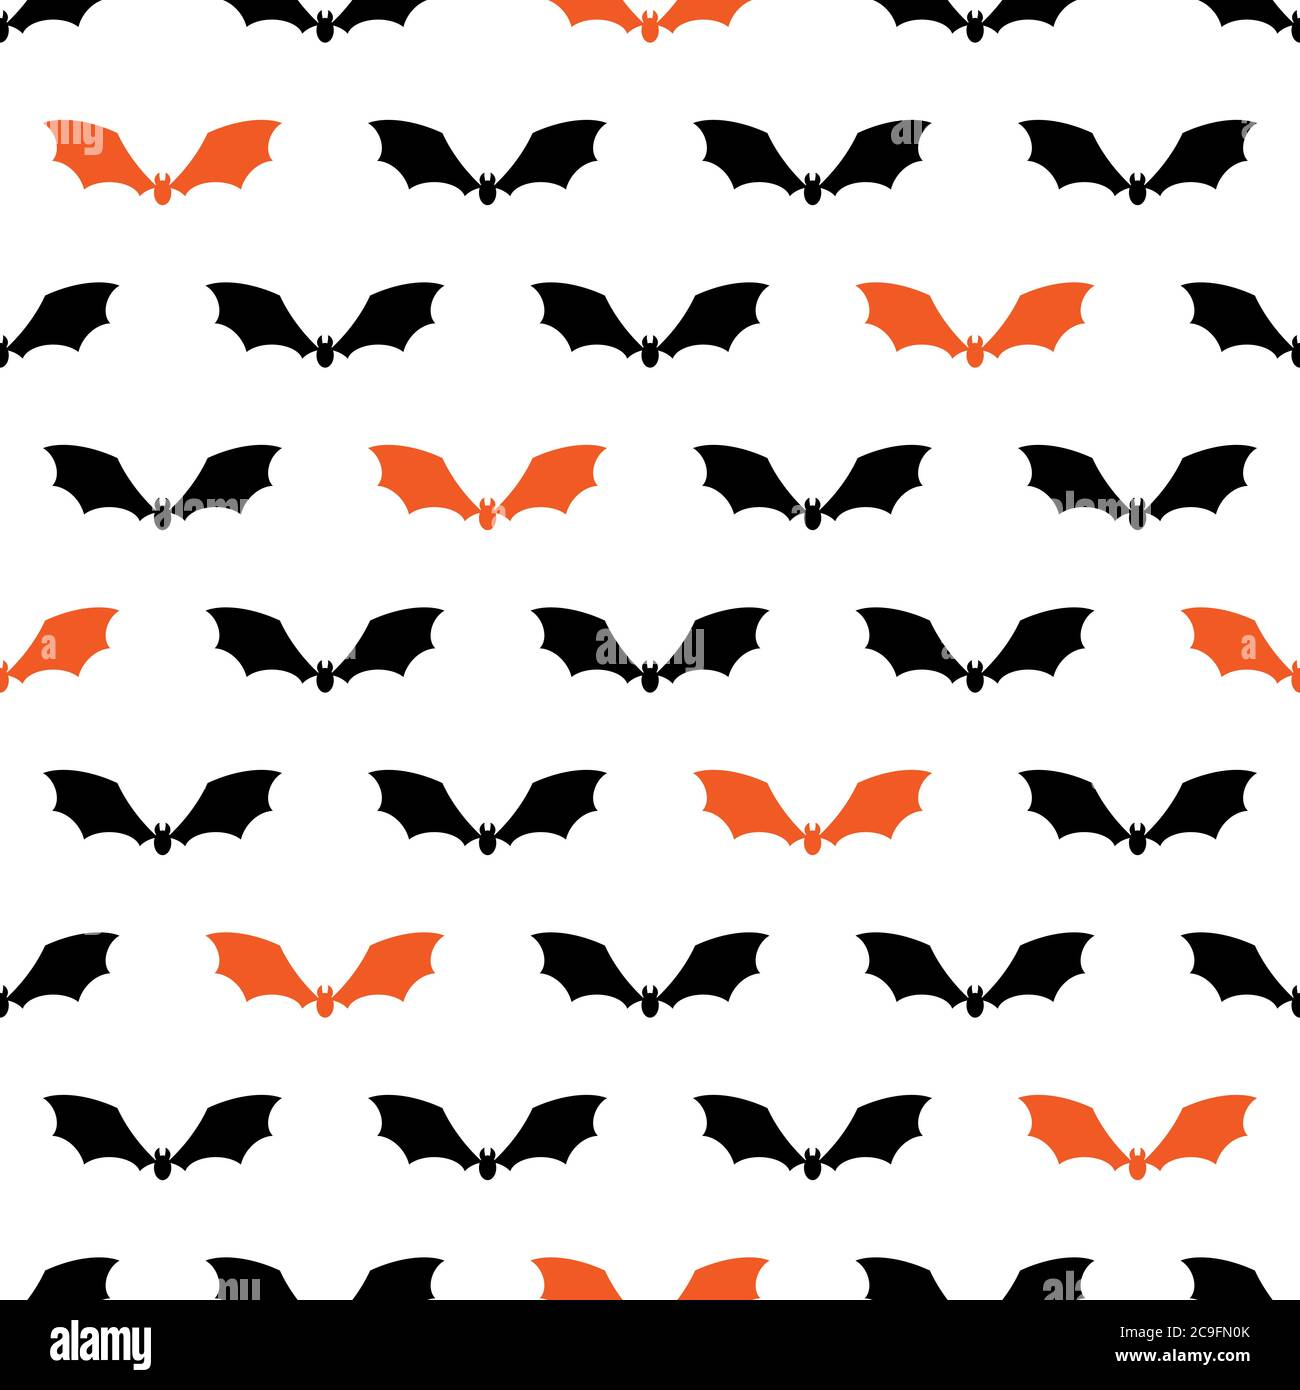 Seamless Pattern With Black And Orange Bat Silhouette On White Background Halloween Vector Wallpaper Stock Vector Image Art Alamy